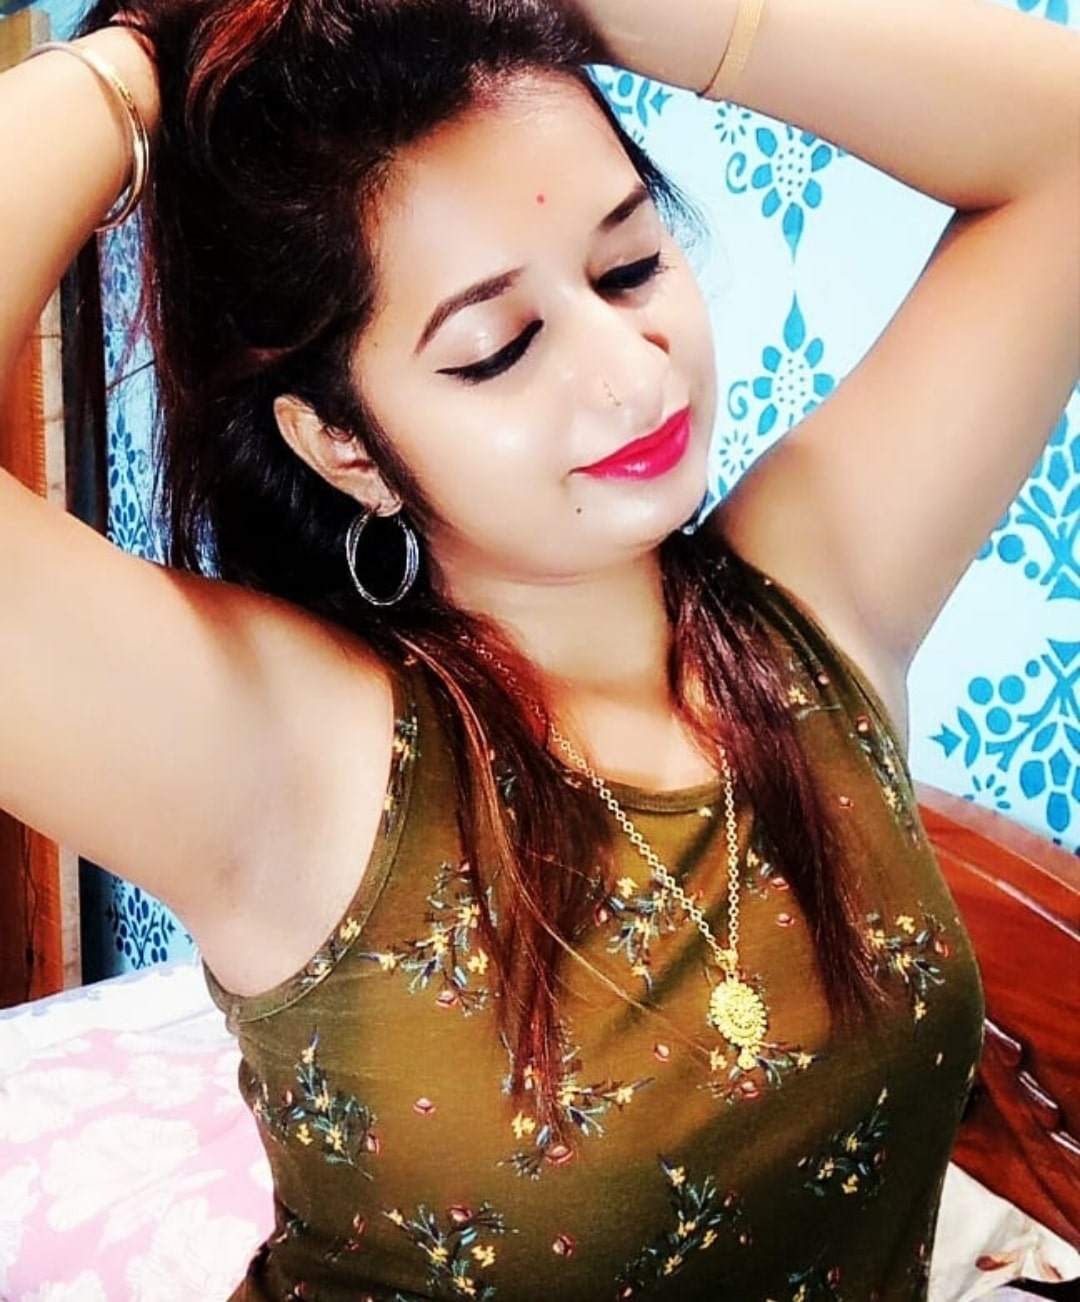 Escorts Service In Hyderabad Call Girls Service for 247 - Punternet Reviews